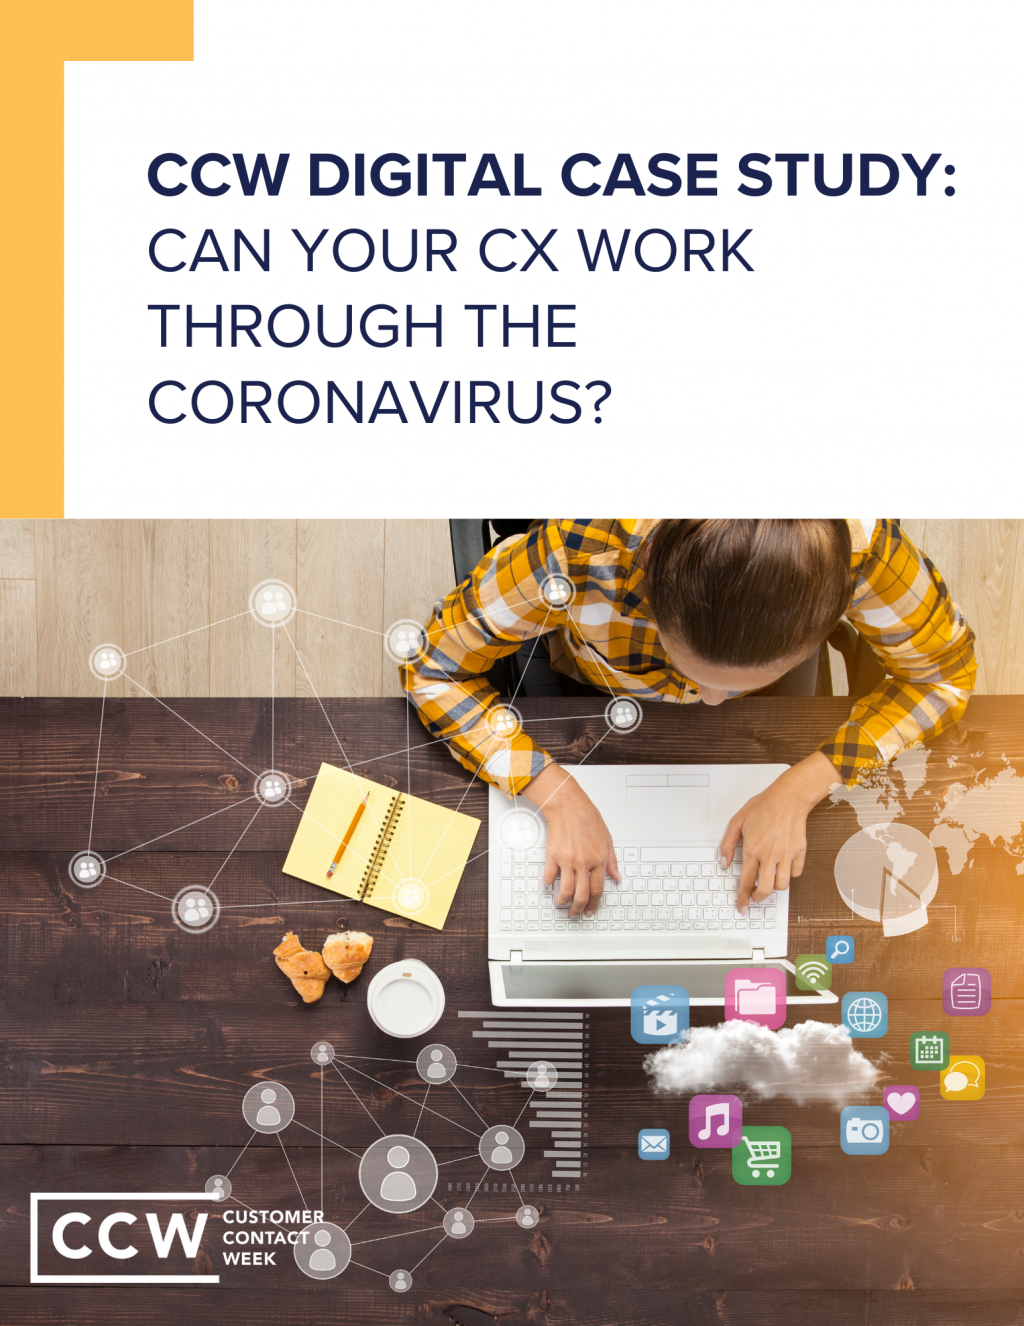 A CCW Digital Case Study: Can Your CX Work Through The Coronavirus?